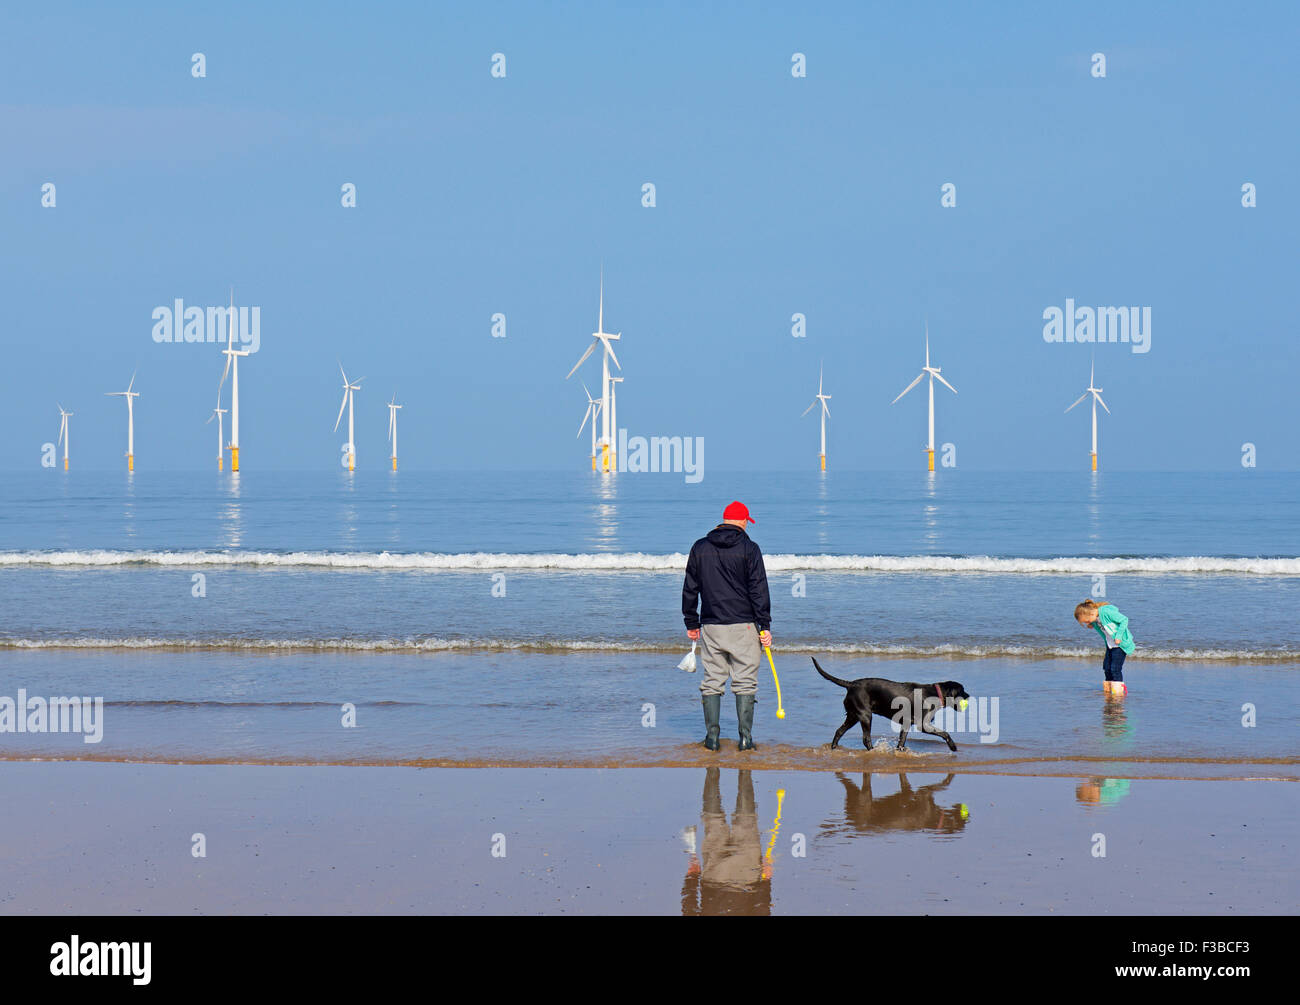 Man, girl and dog on the beach at Redcar, Cleveland, England UK - Stock Image